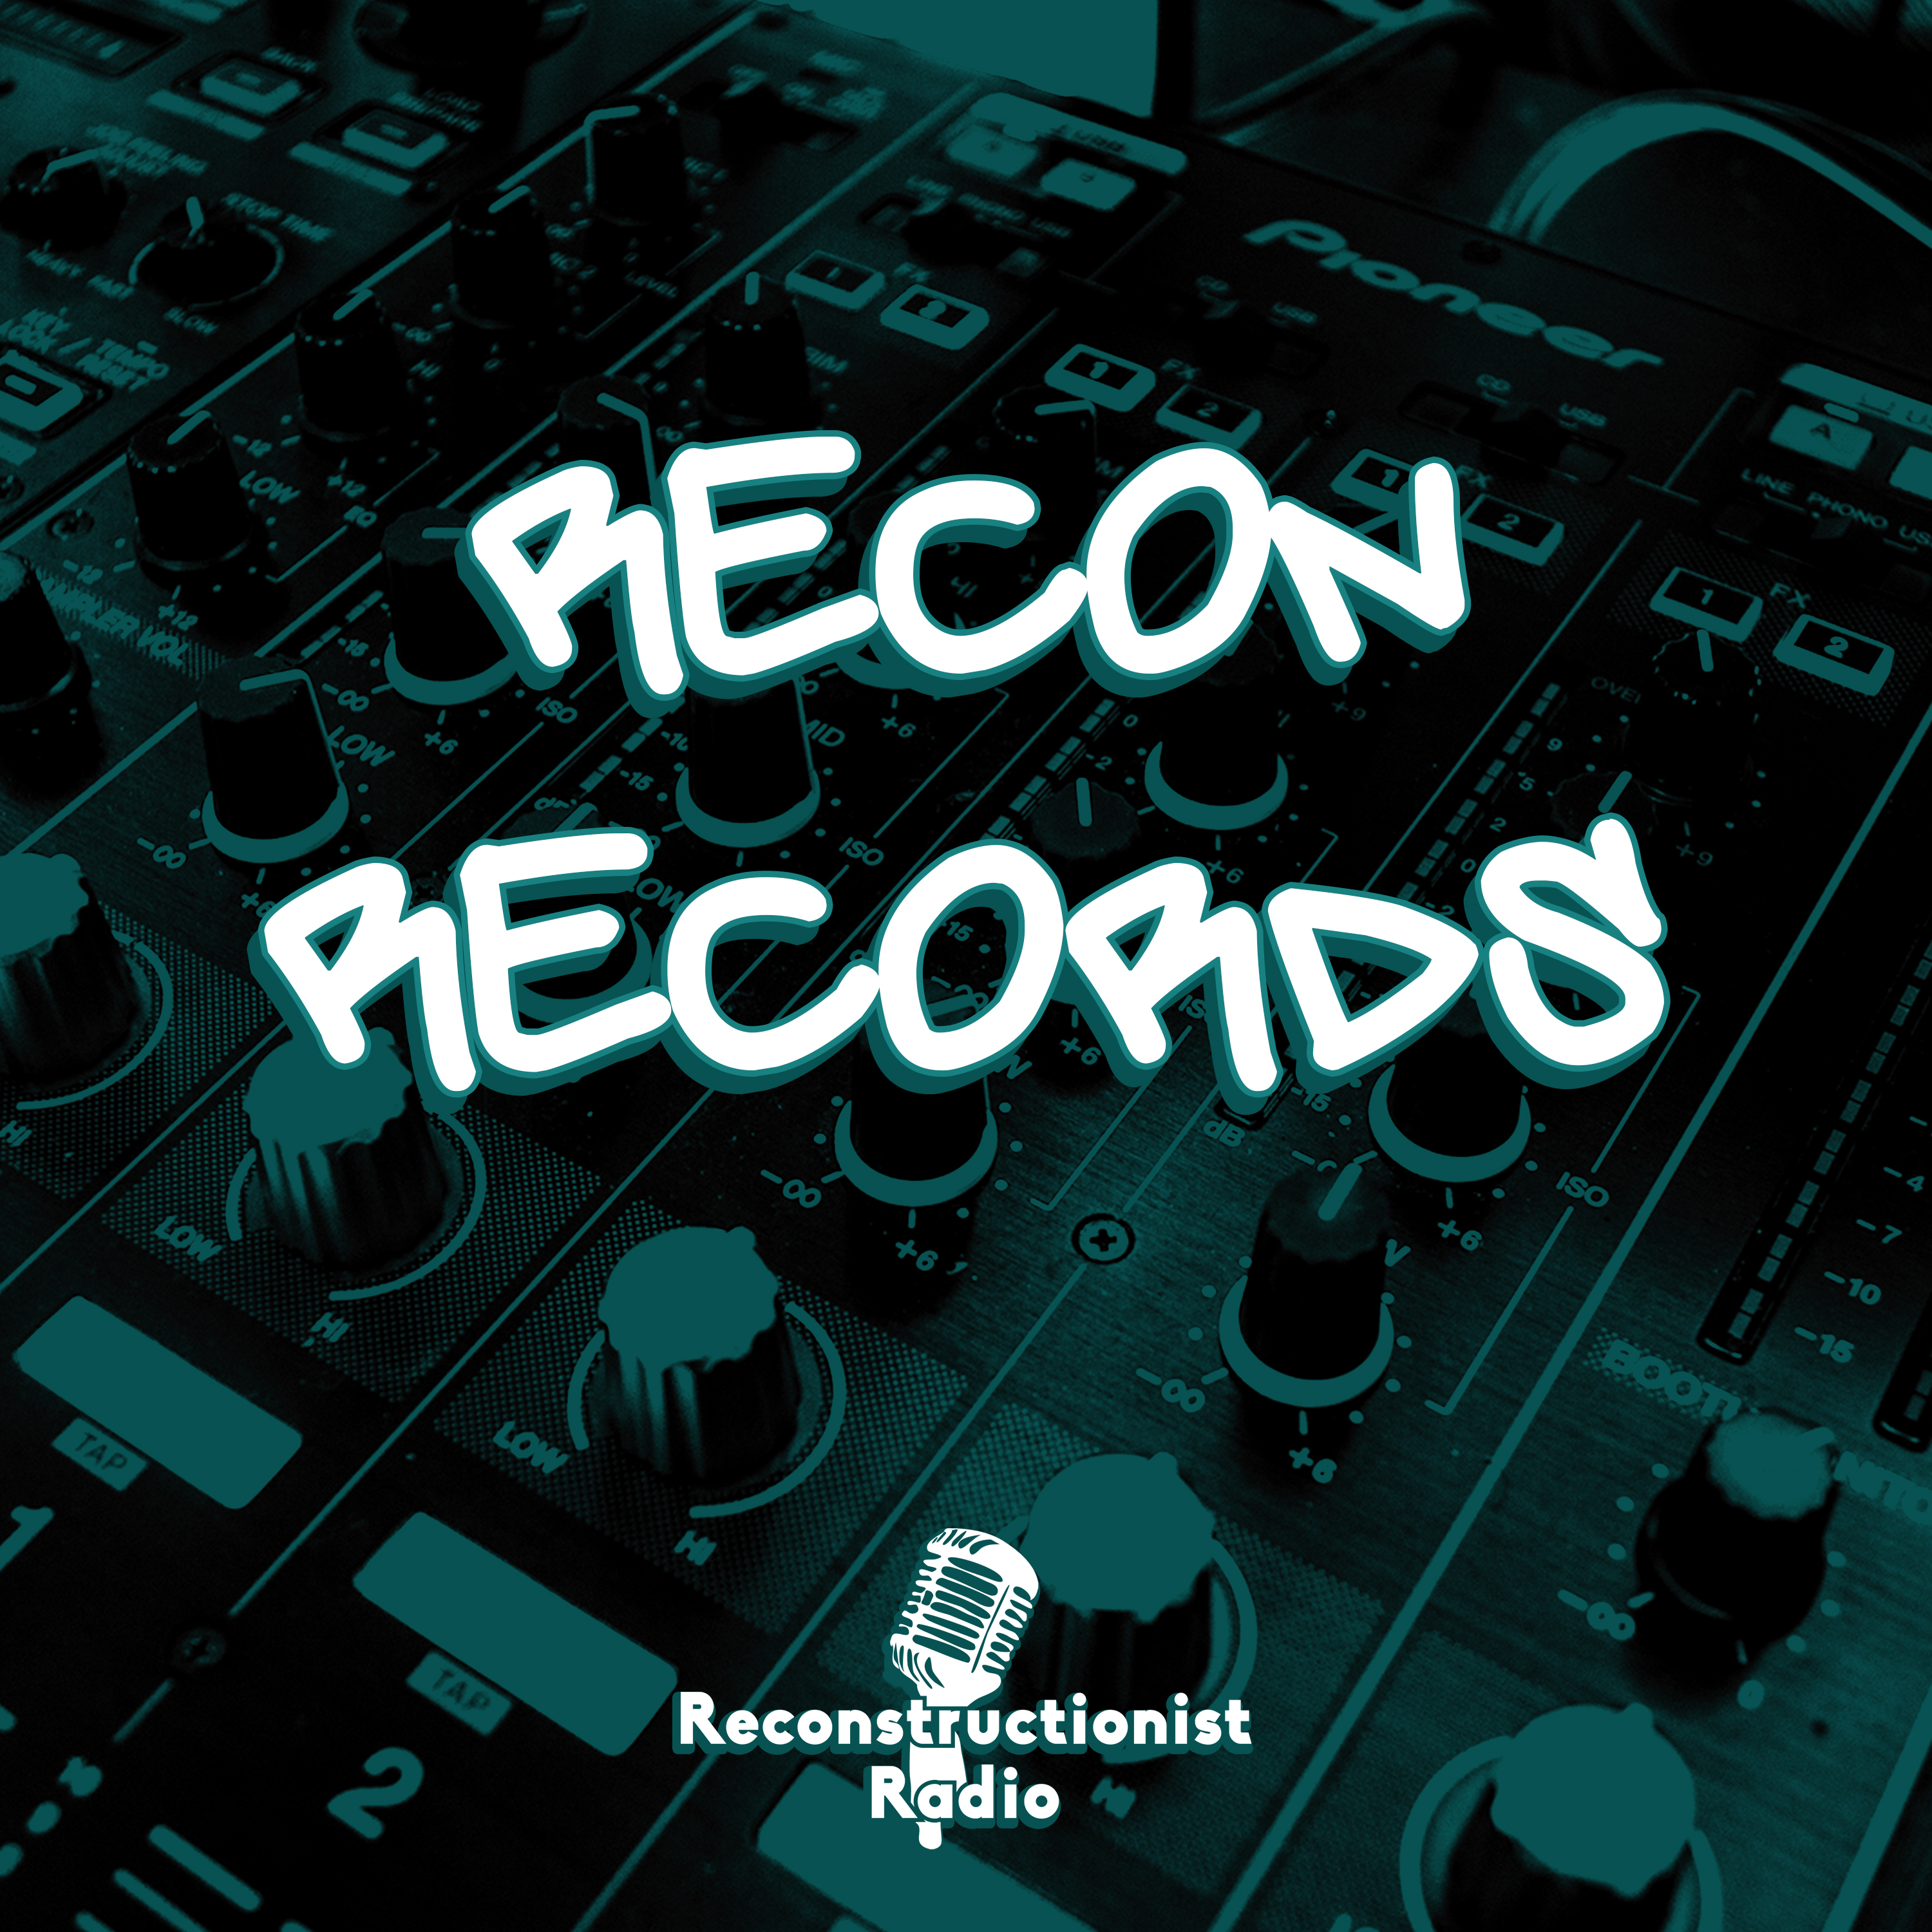 Recon Records - Music for the Kingdom Driven from Reconstructionist Radio